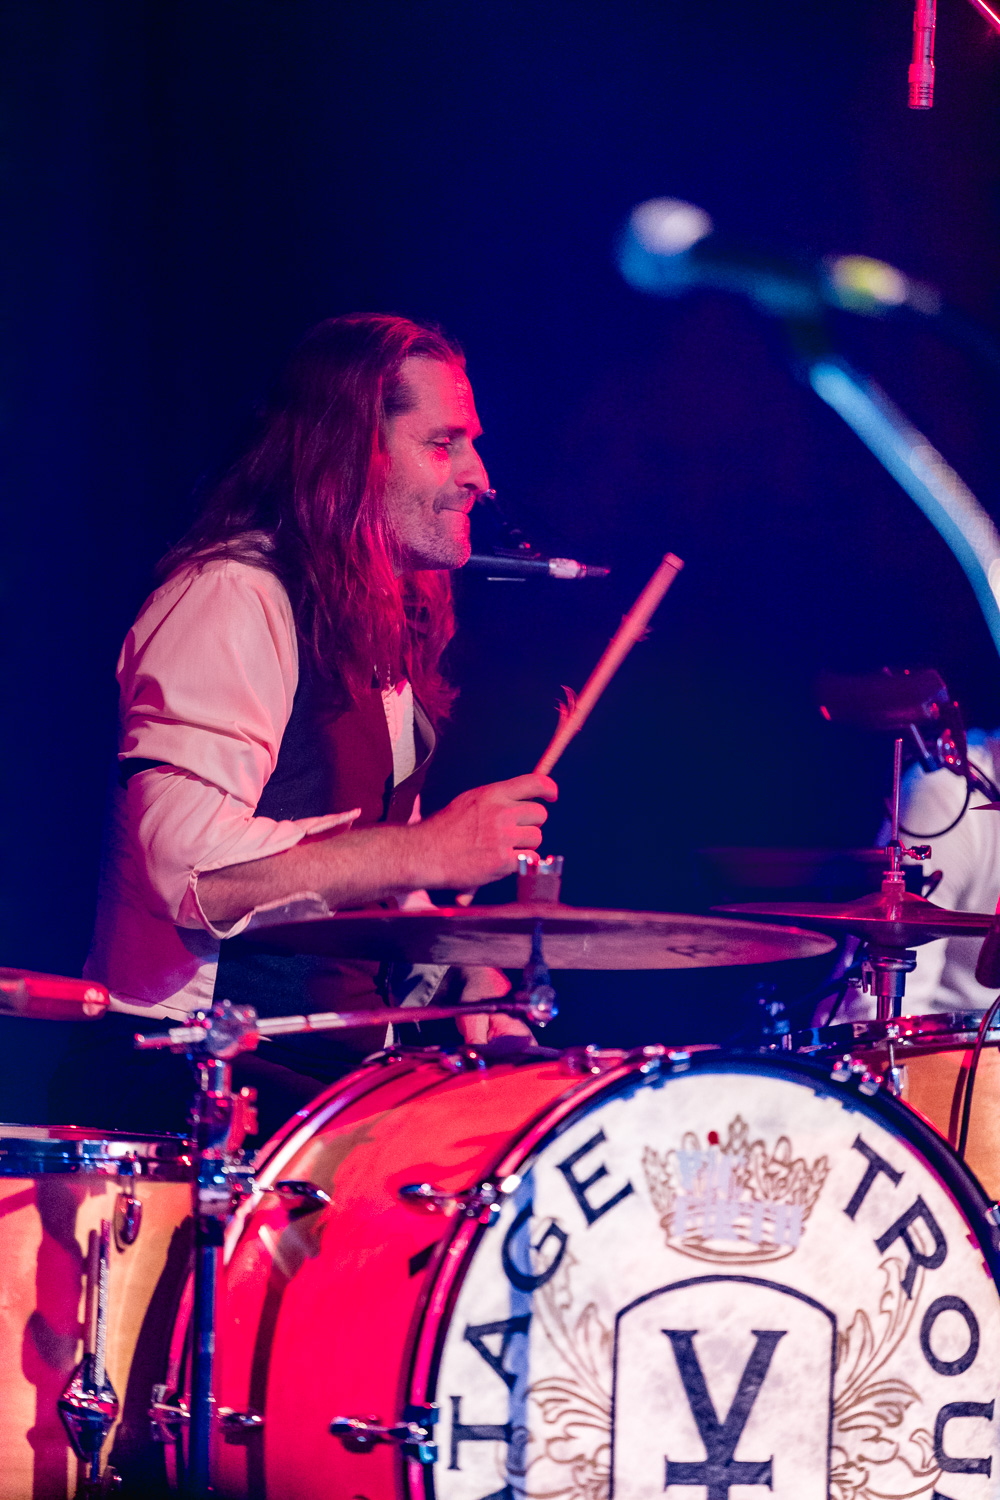 Drummer for Vintage Trouble. Photo: Lmsorenson.net